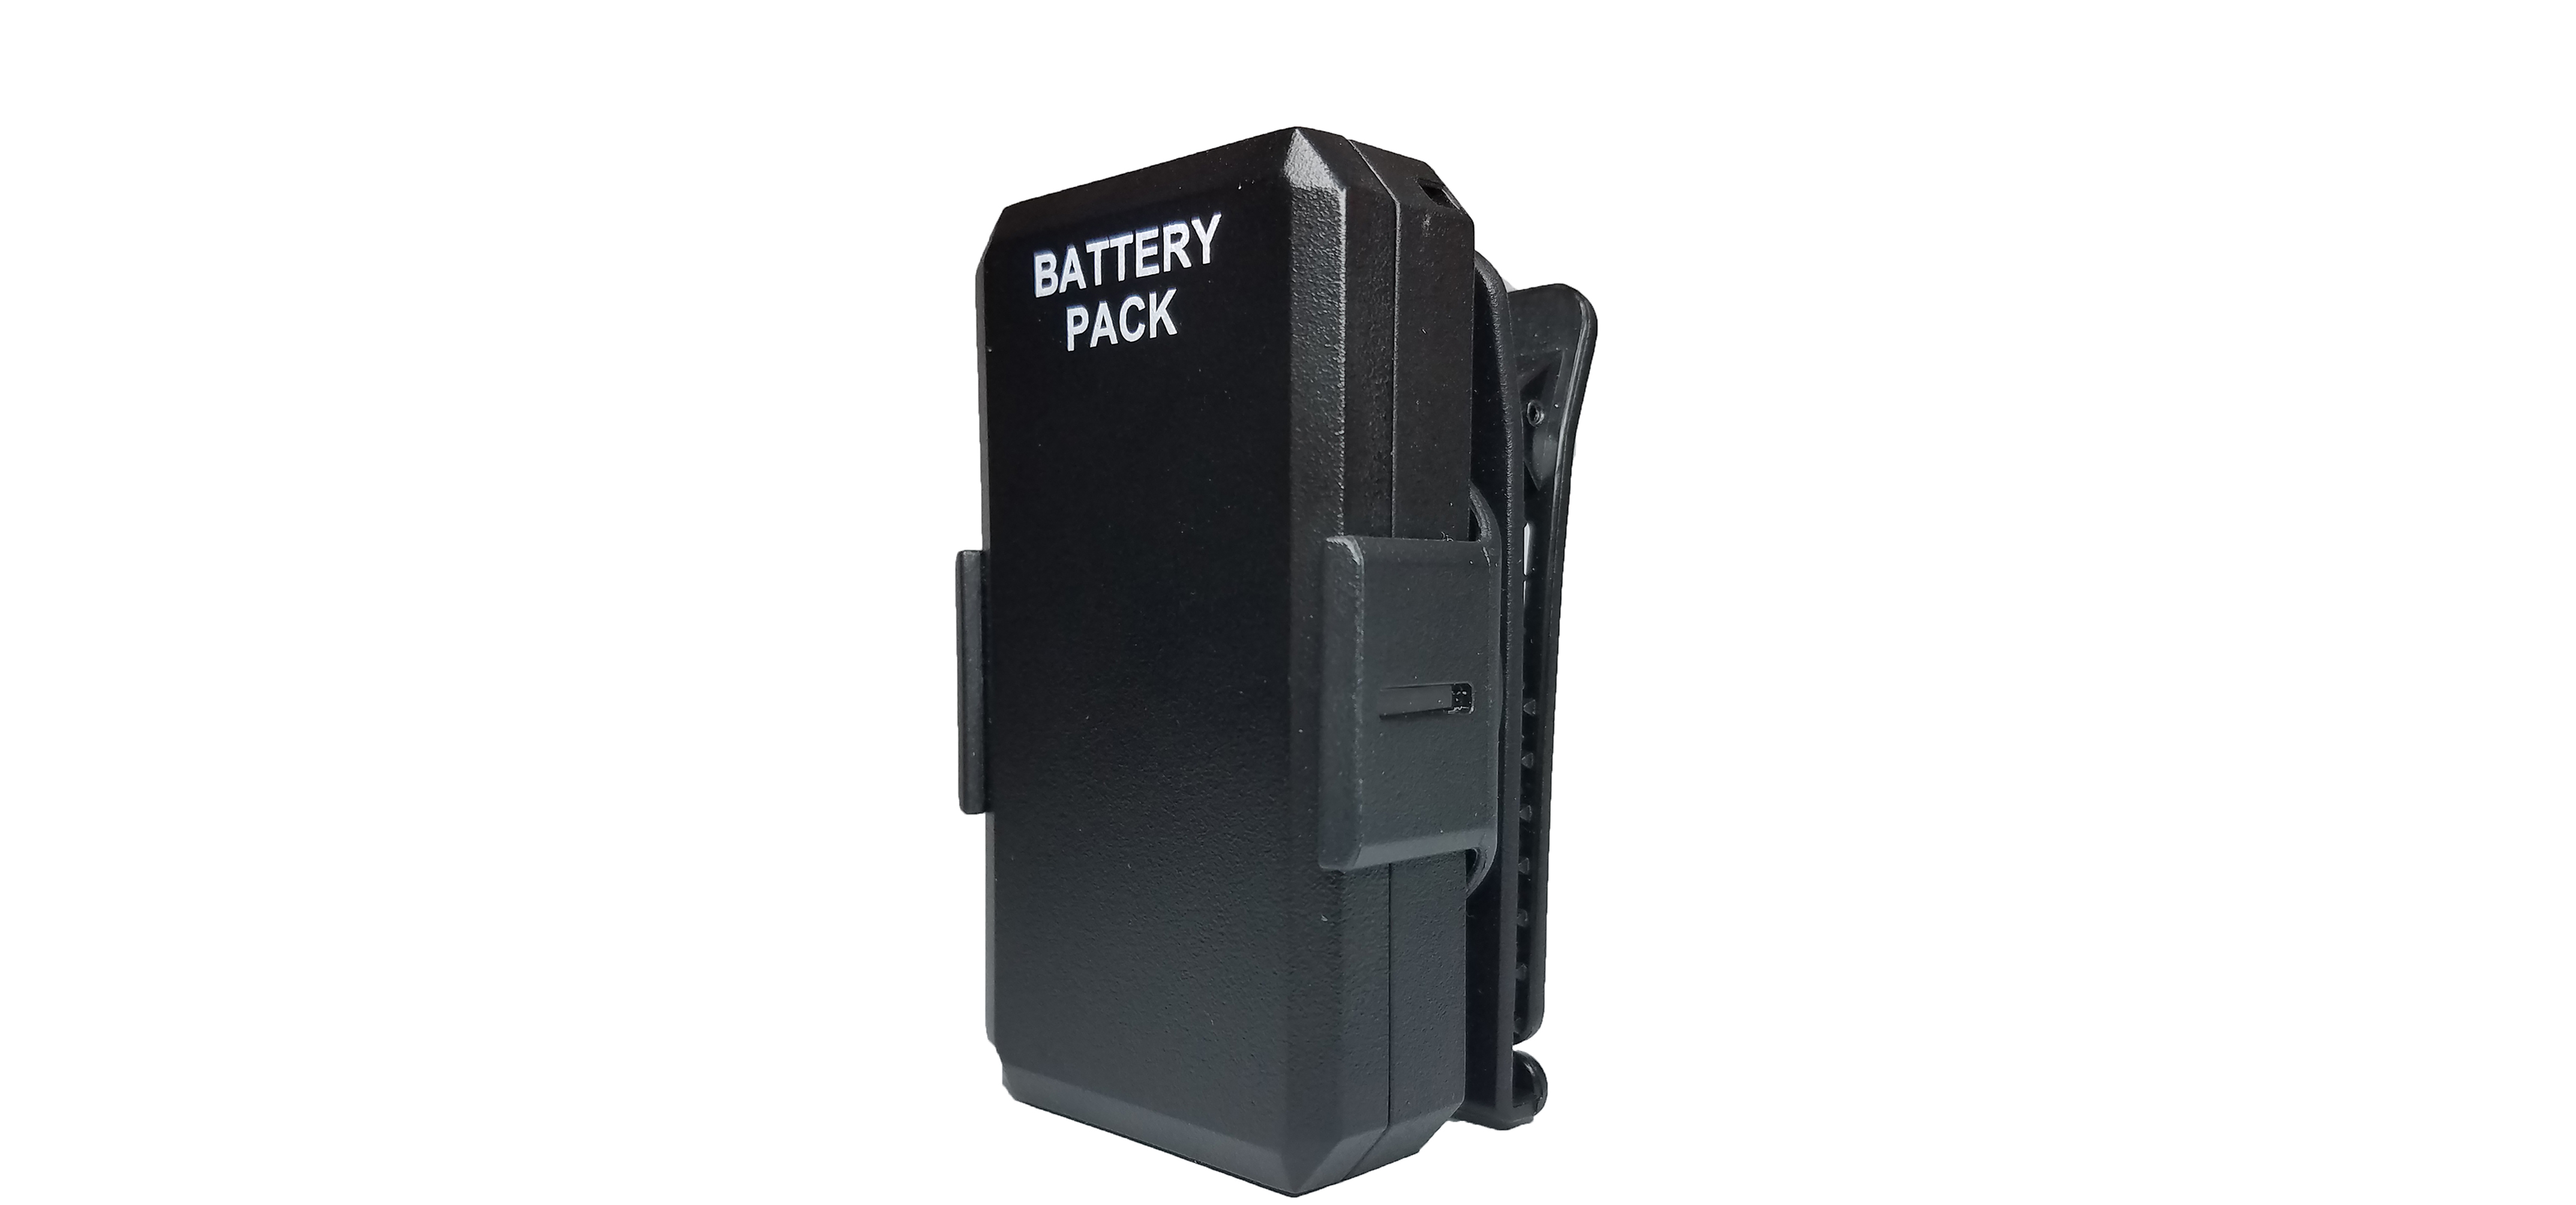 4 hour battery pack